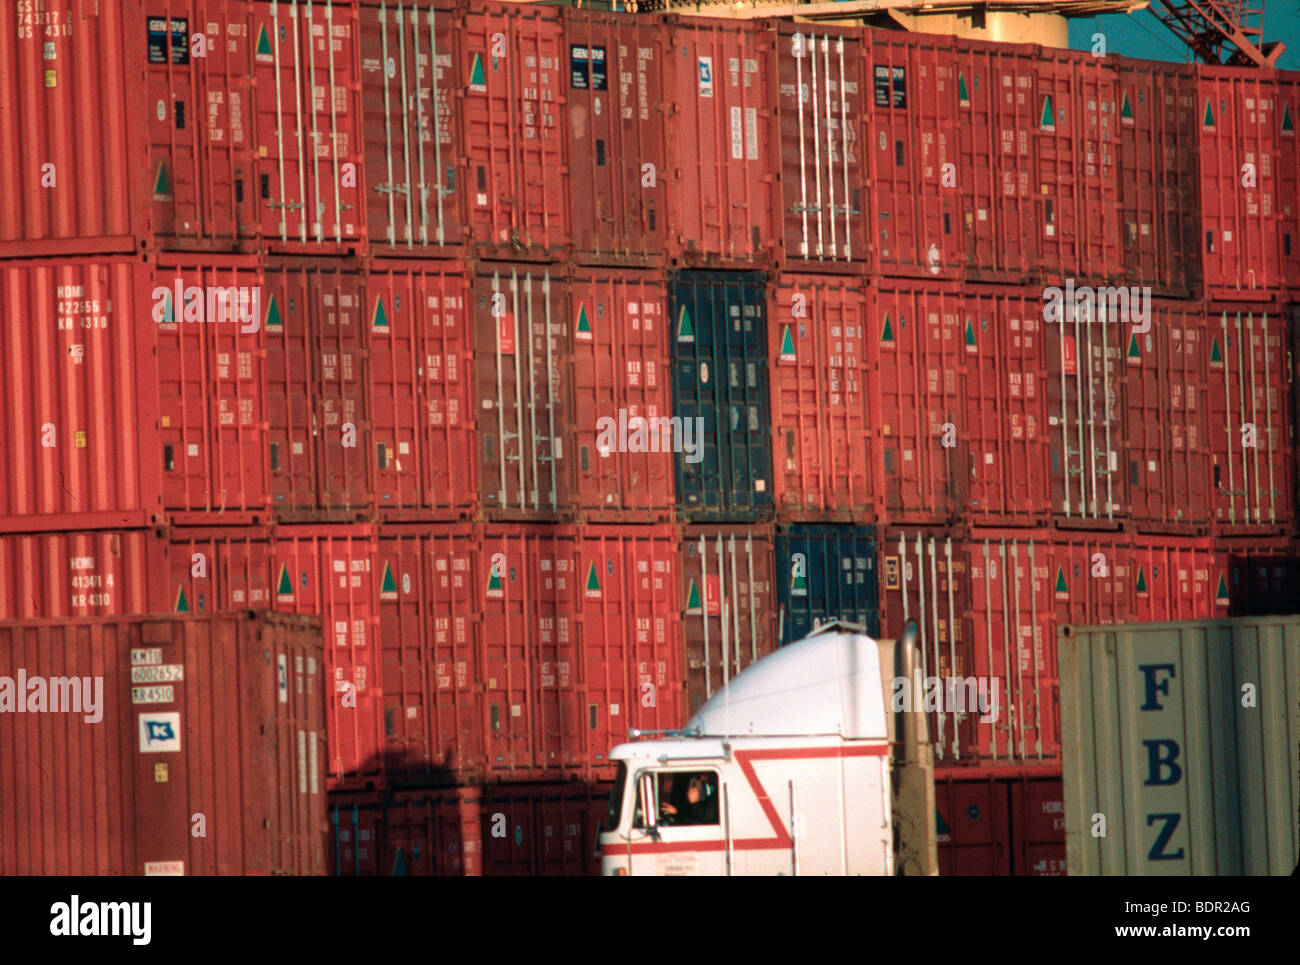 Shipping containers and truck at Port of Seattle - Stock Image